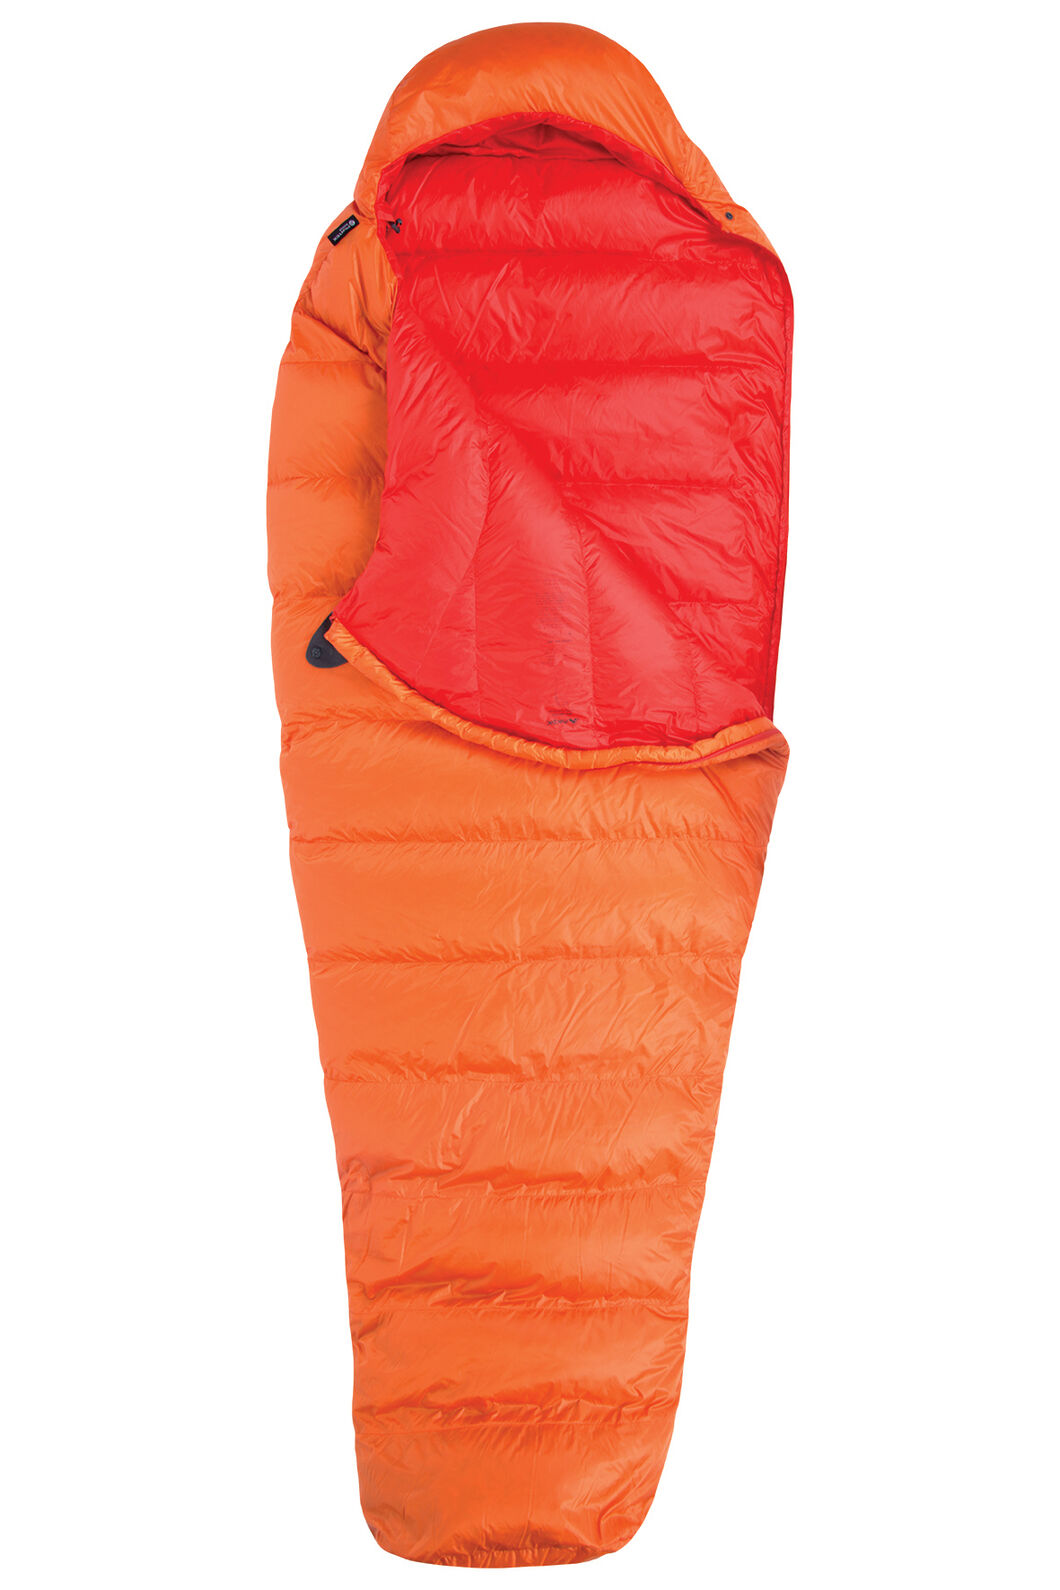 Epic HyperDRY™ Down 400 Sleeping Bag - Extra Large, Exuberance/ Indicator, hi-res